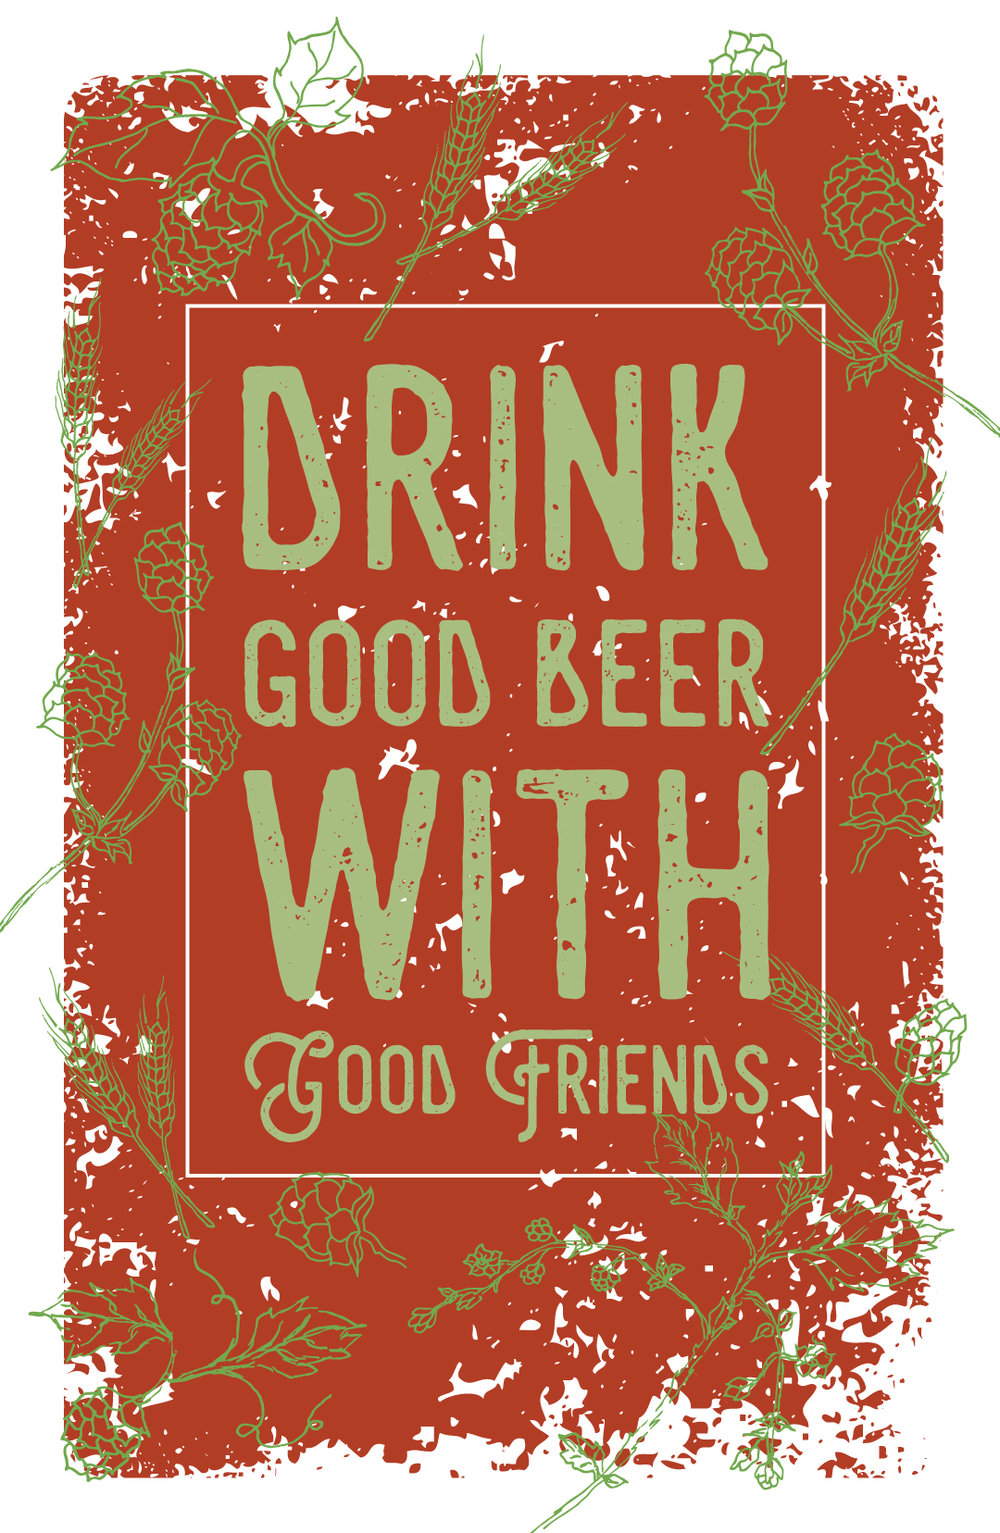 Craft+Beer+Poster-01.jpg